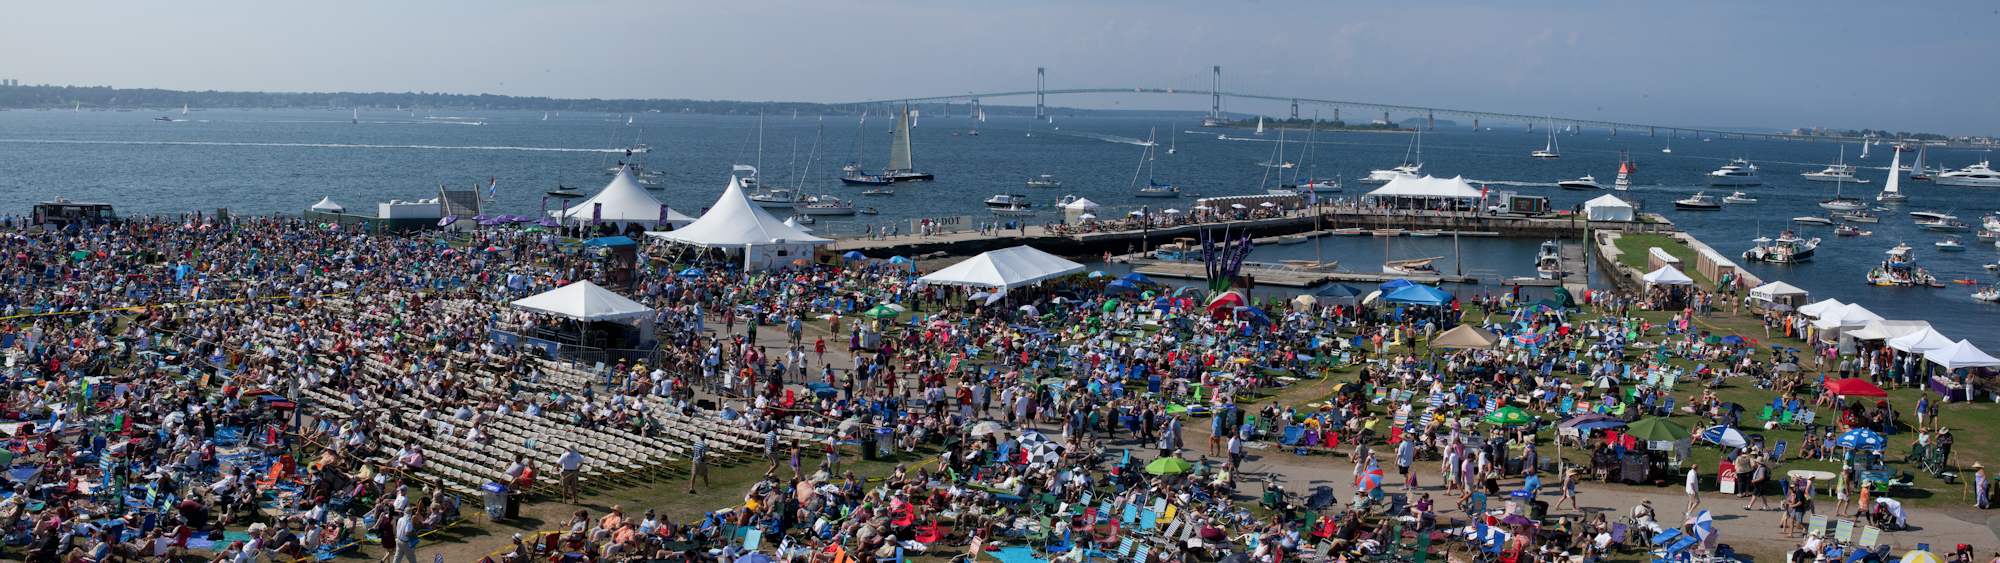 Concert goers take in the Narragansett Bay at Fort Adams State Park during the Newport Jazz Festival.